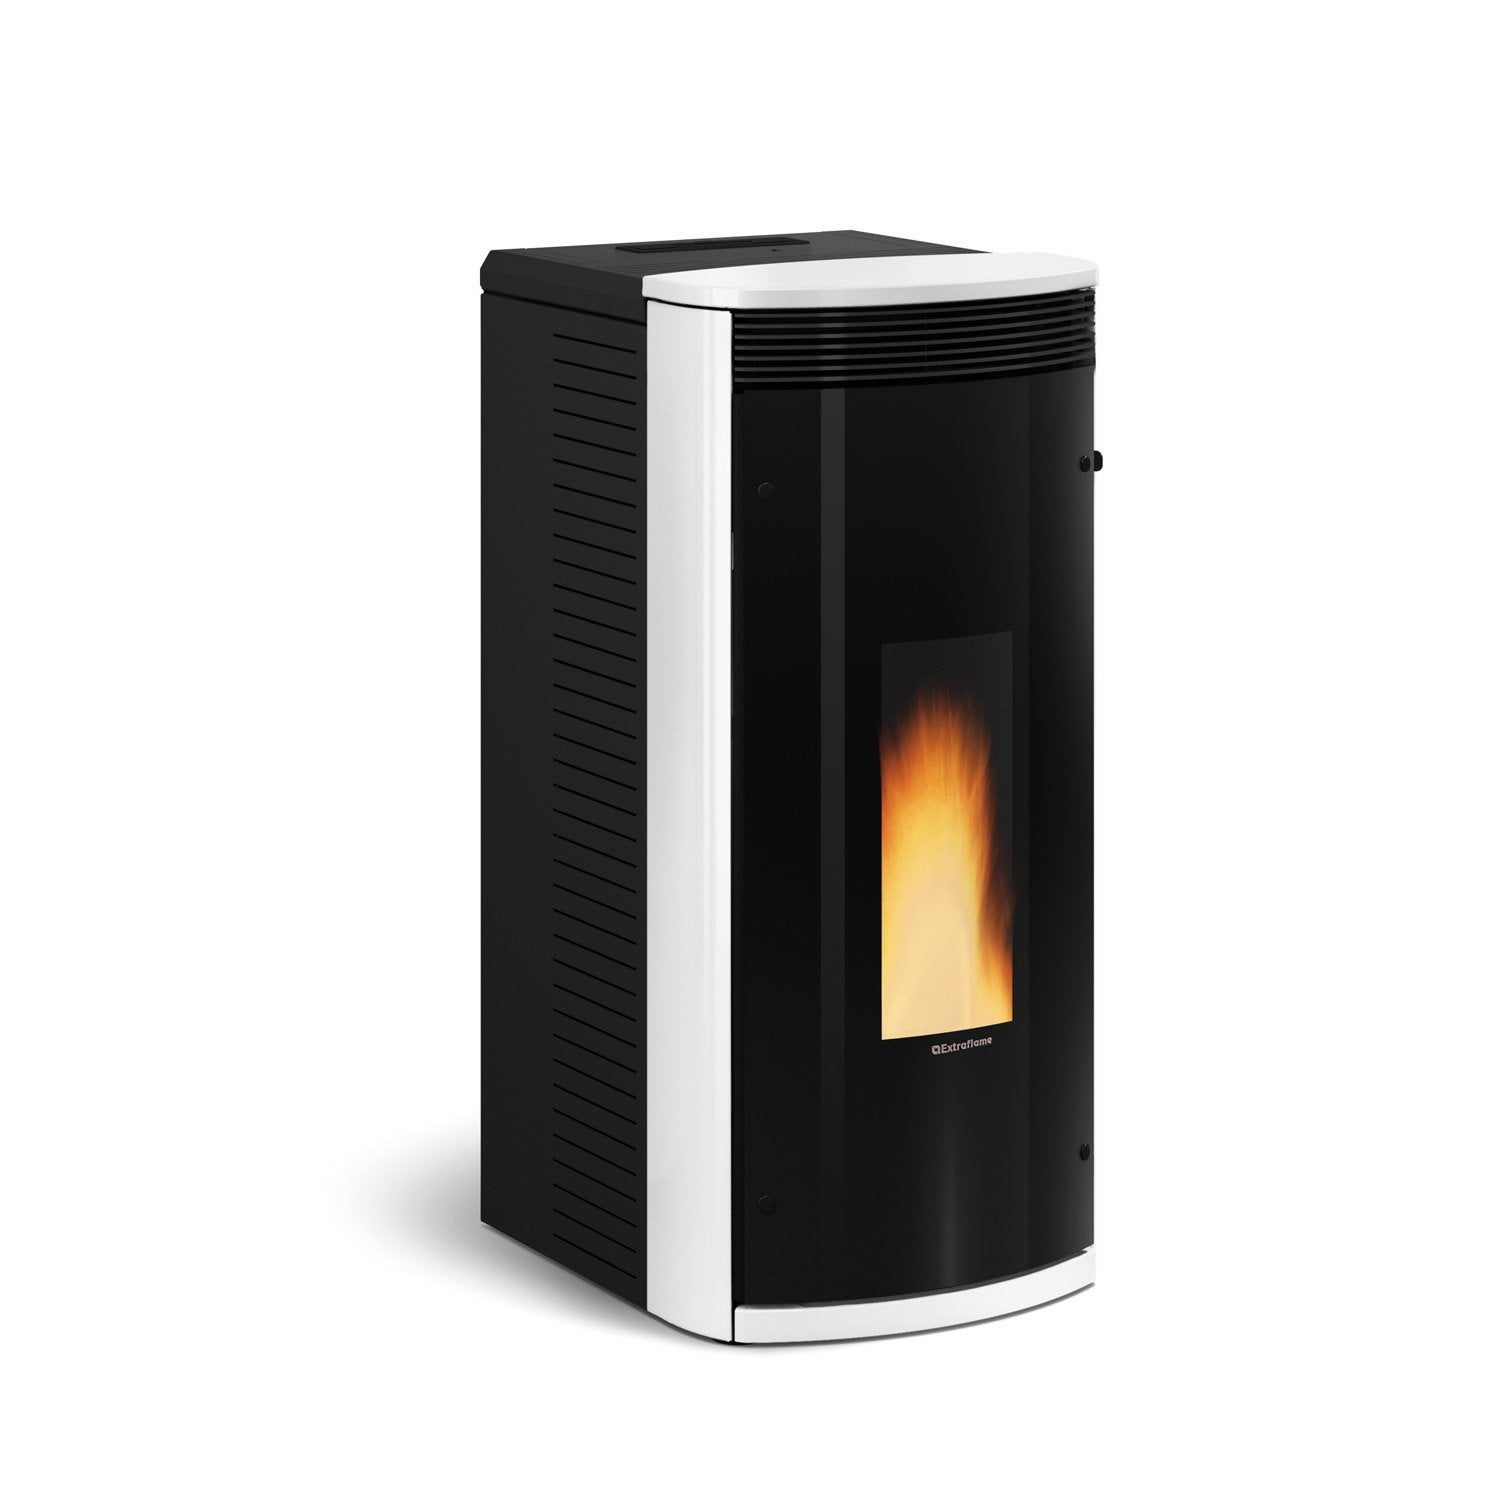 po le granul s extraflame sibilla blanc 8 2 kw leroy merlin. Black Bedroom Furniture Sets. Home Design Ideas